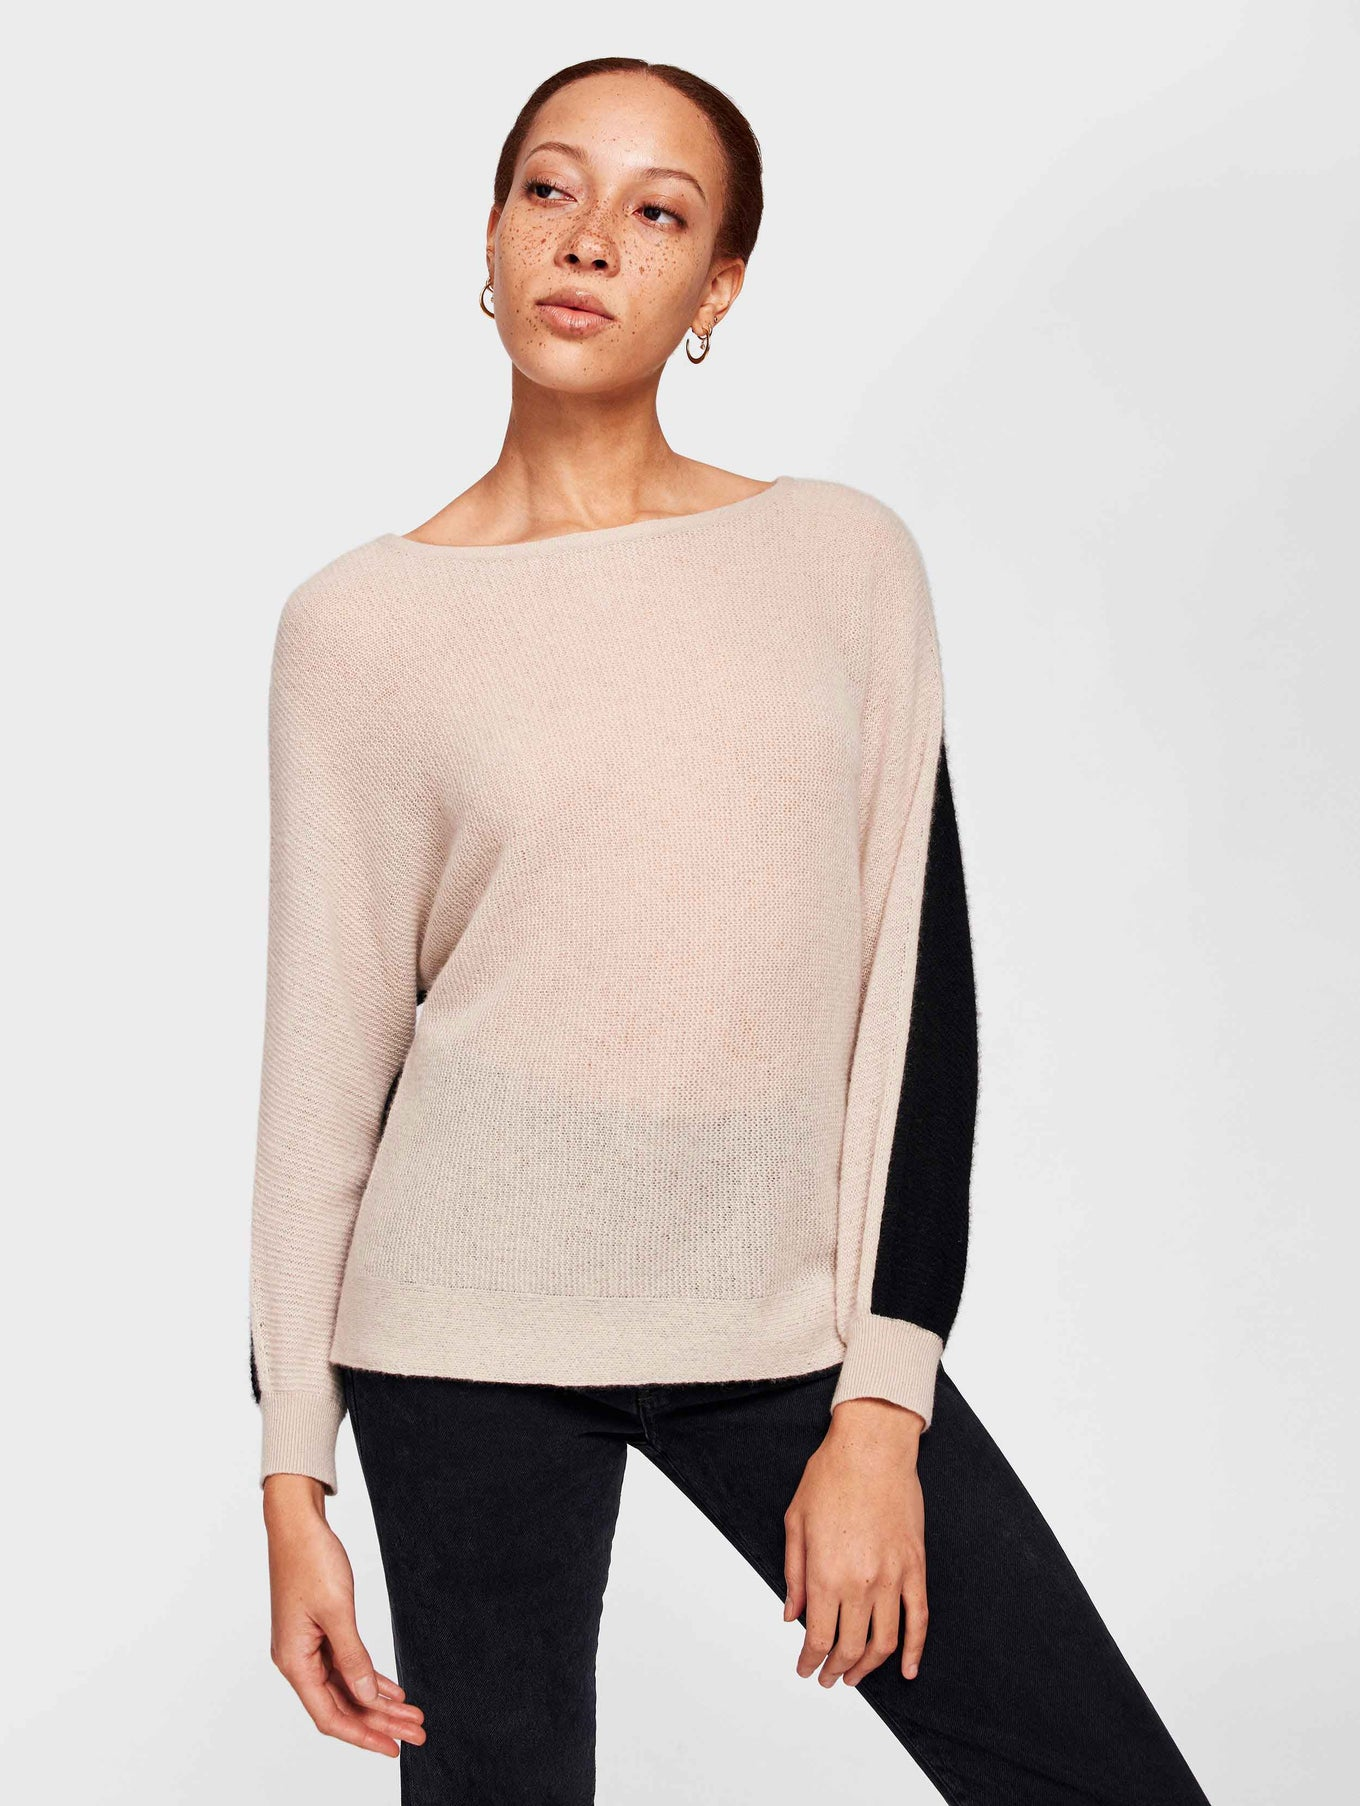 Cashmere Color Blocked Dolman Crewneck - Sandstone/Black - Image 2